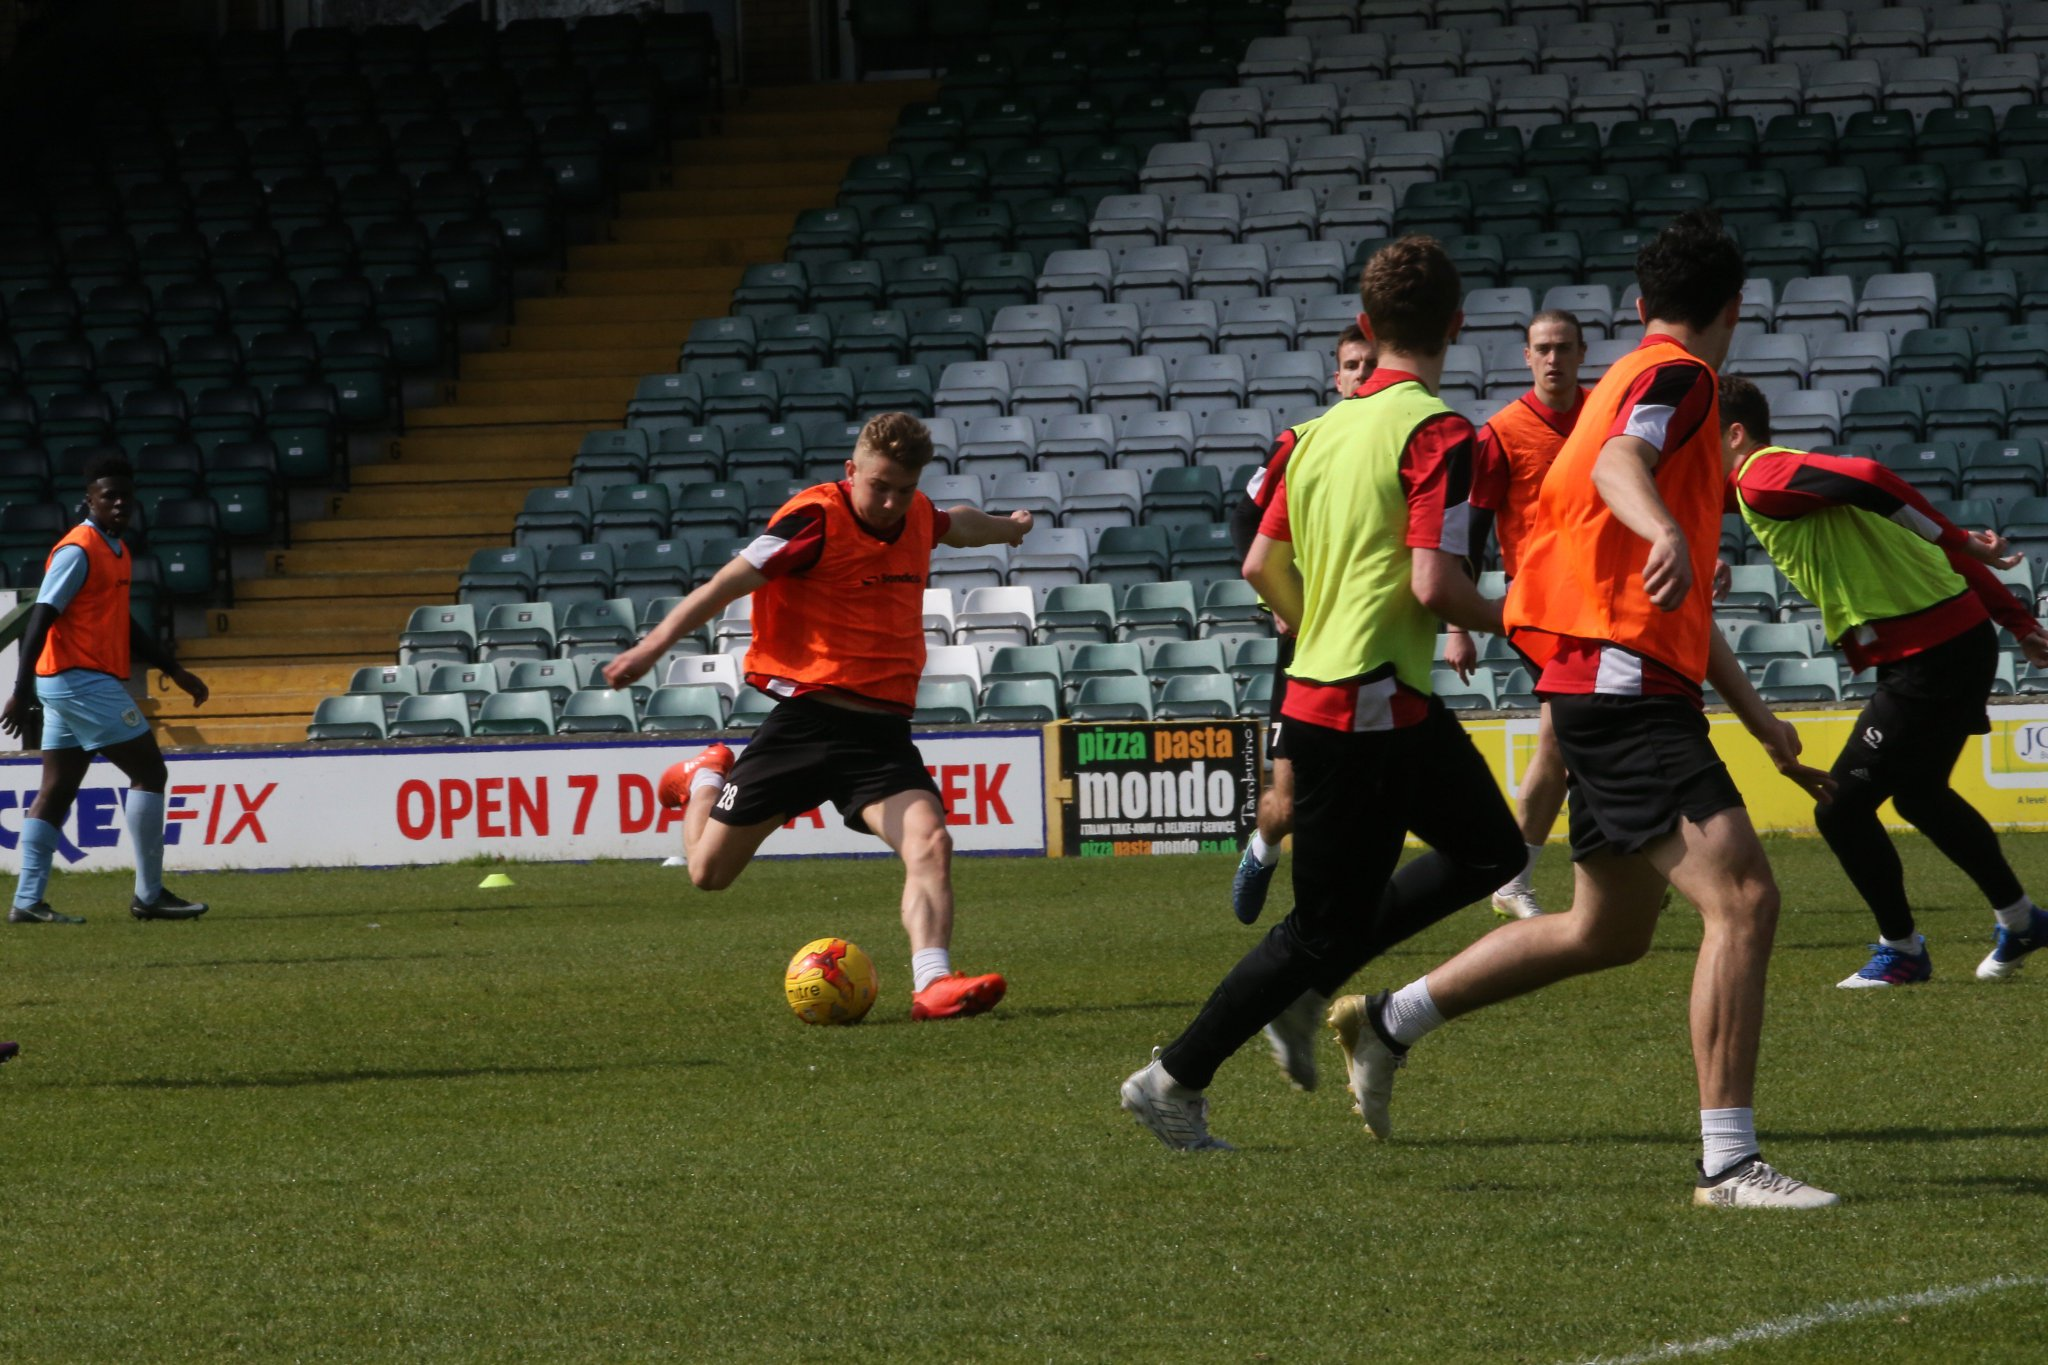 Yeovil Town Fc On Twitter Gallery Photos From Ytfc